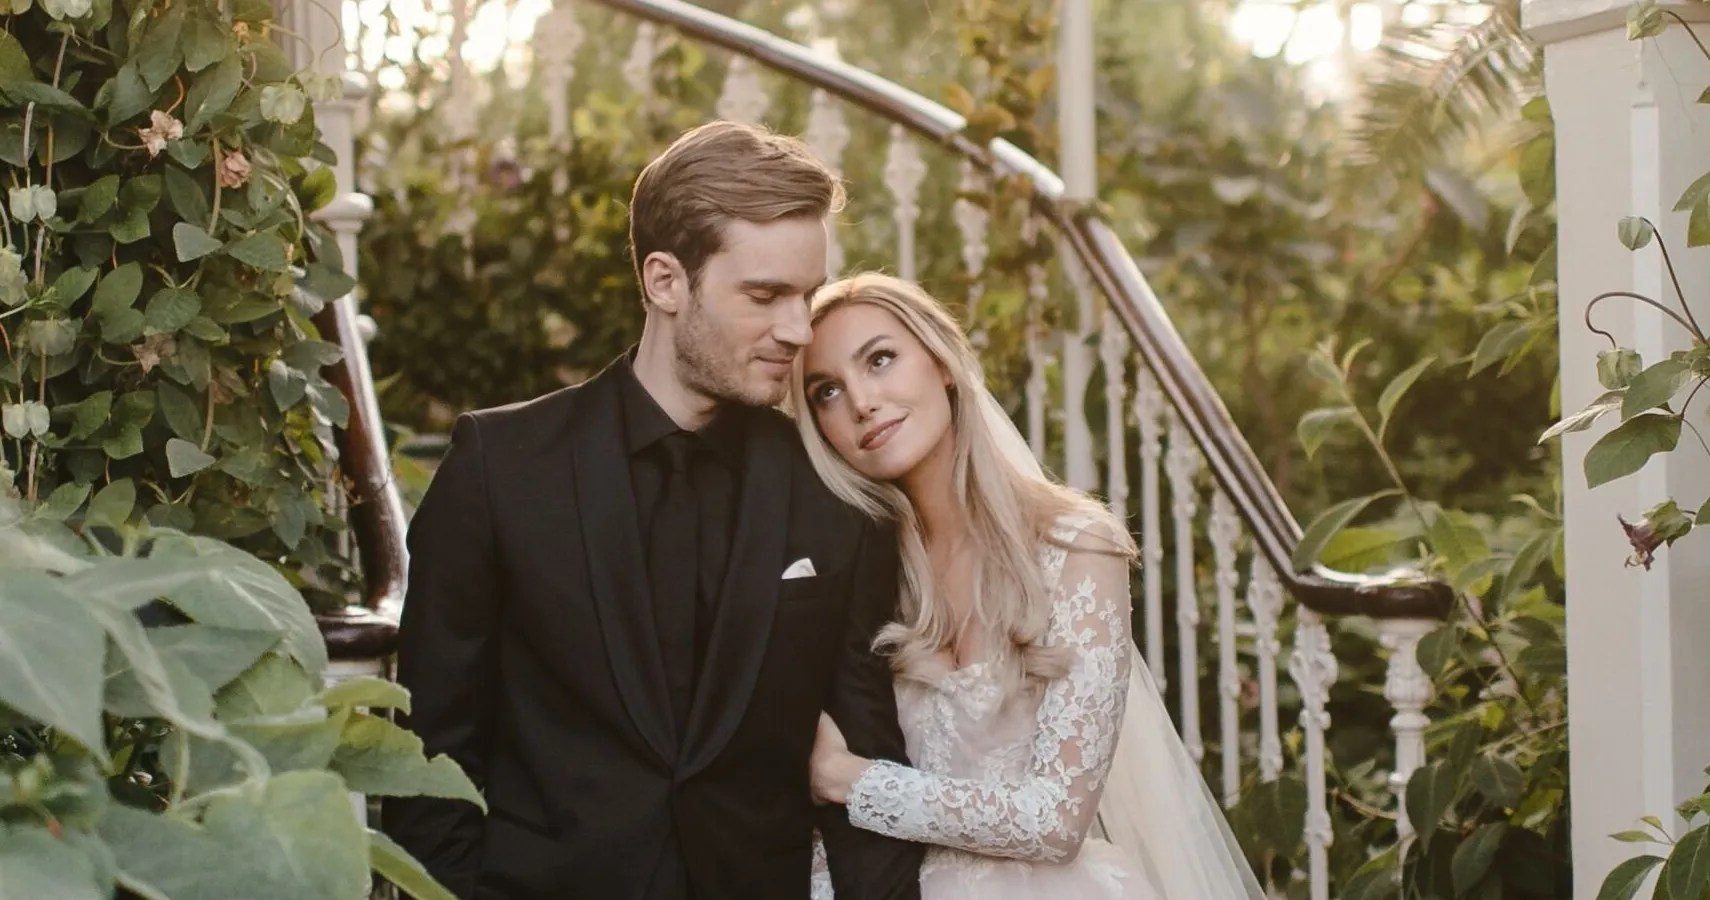 PewDiePie And Marzia Have Finally Gotten Married